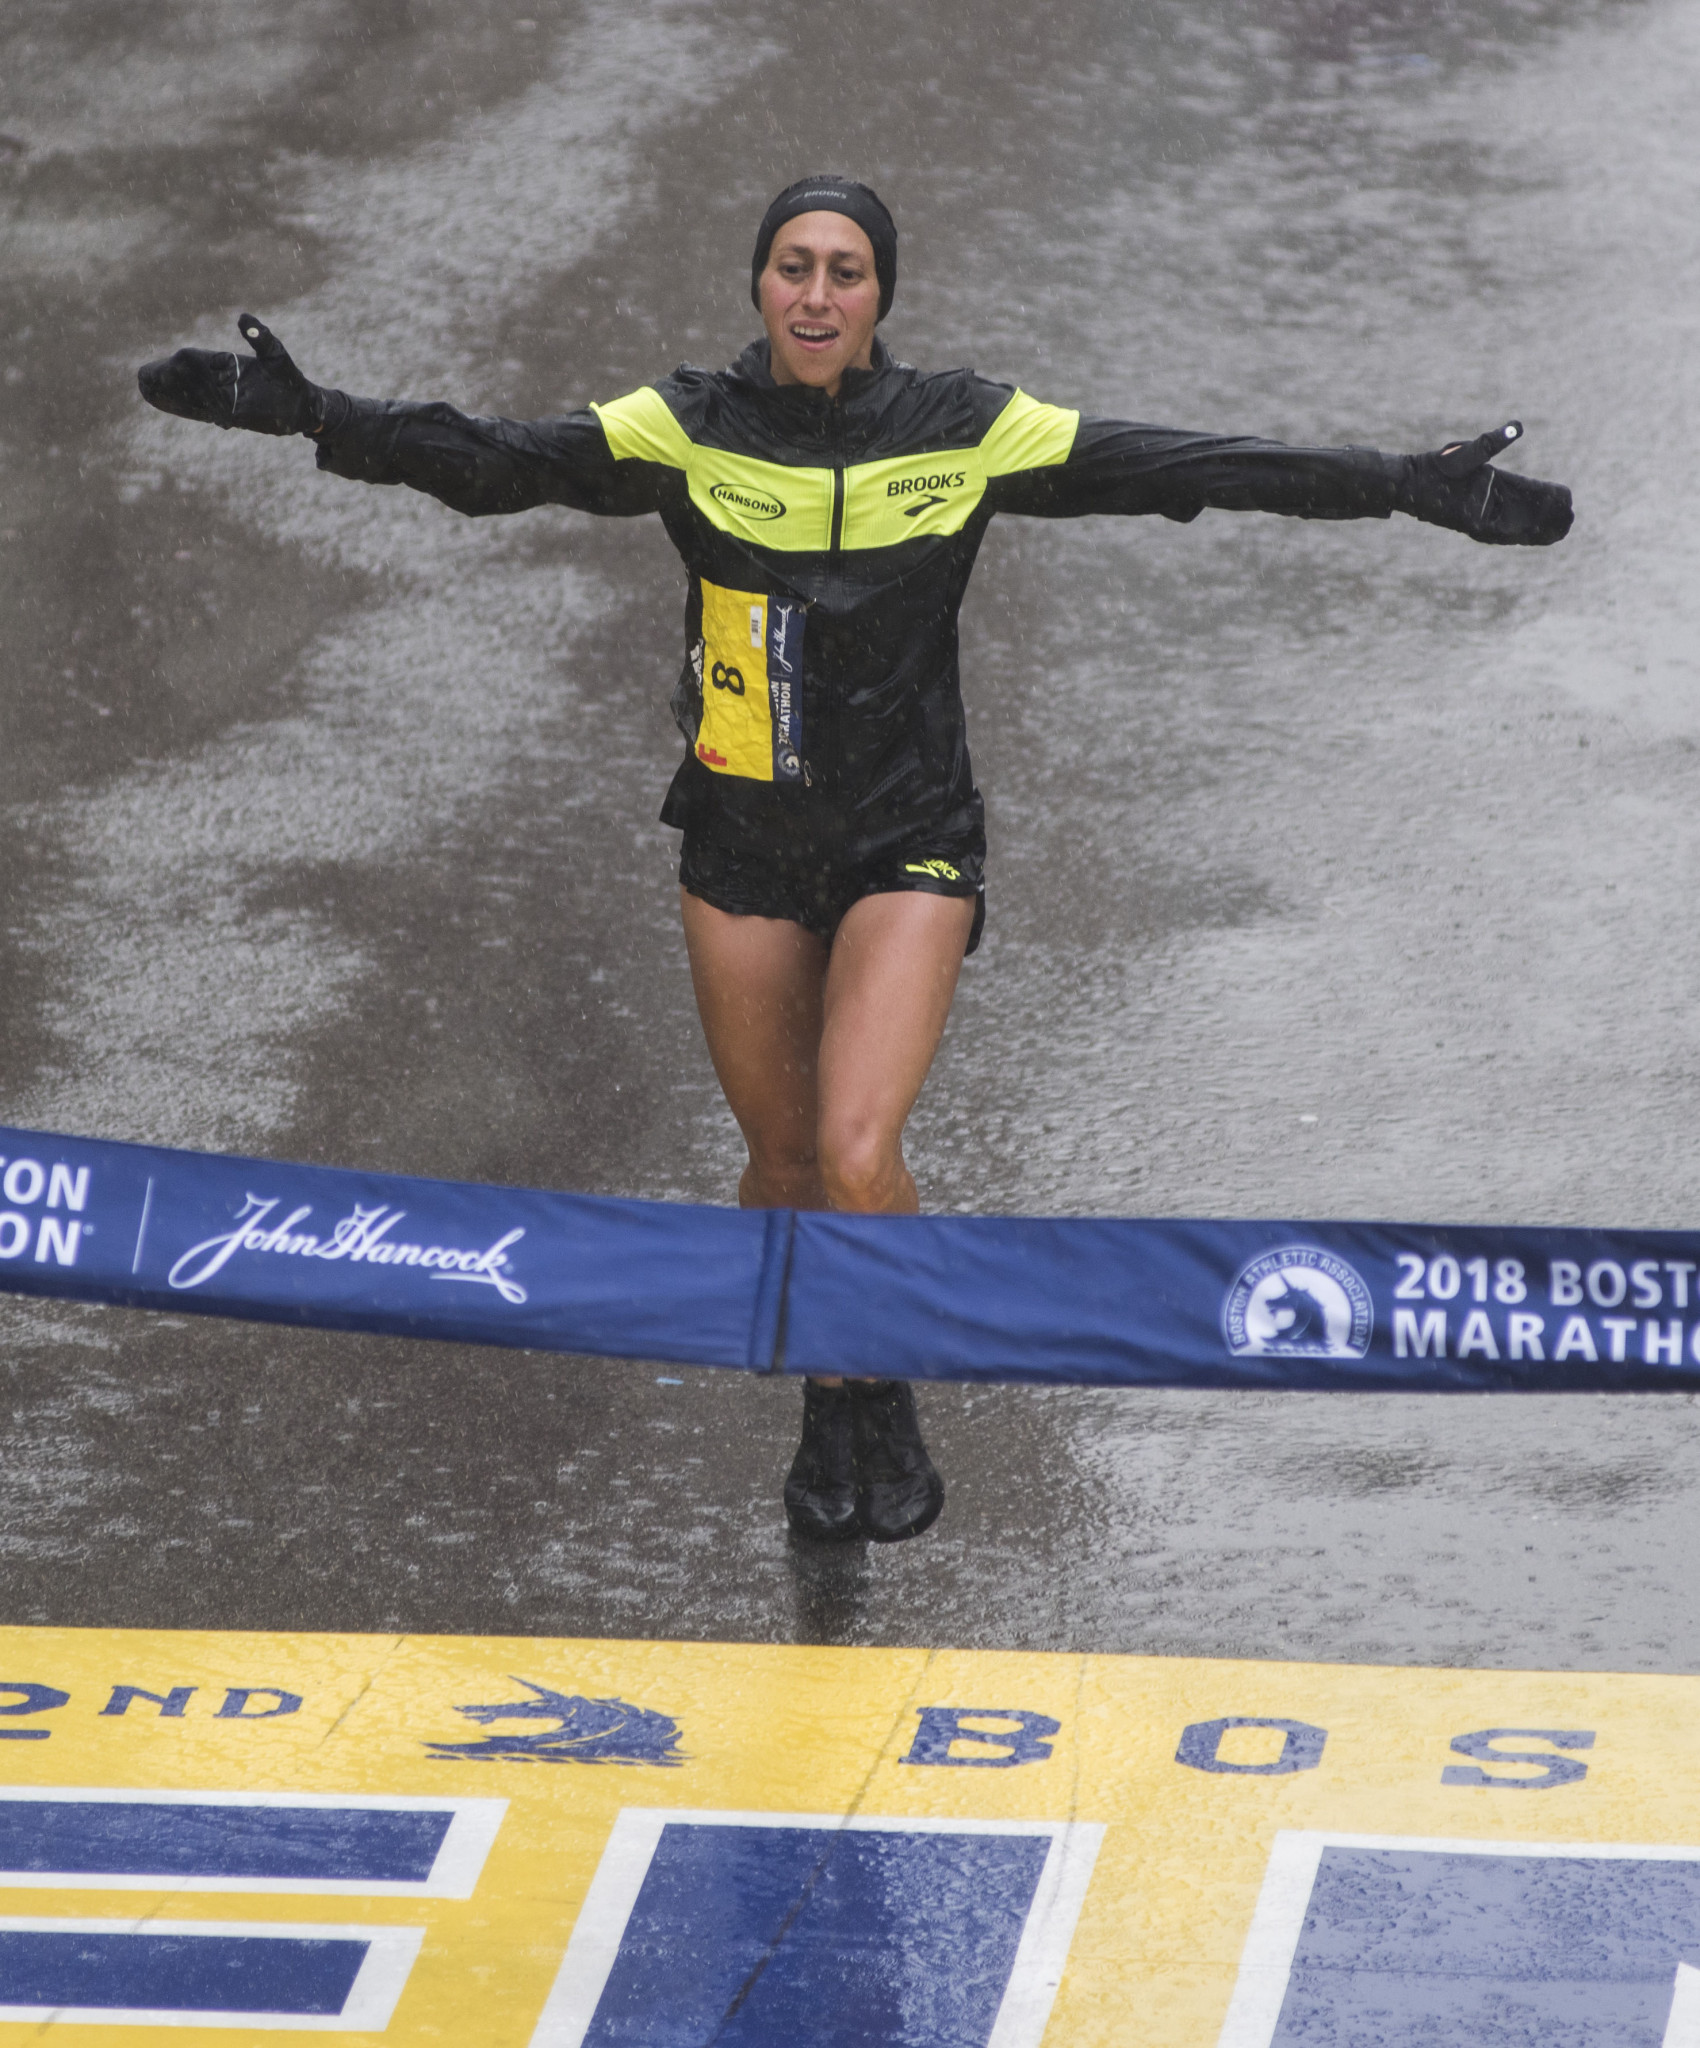 Raining champion - seven years after missing the Boston Marathon title by two seconds, Desiree Linden takes the prize ©Getty Images